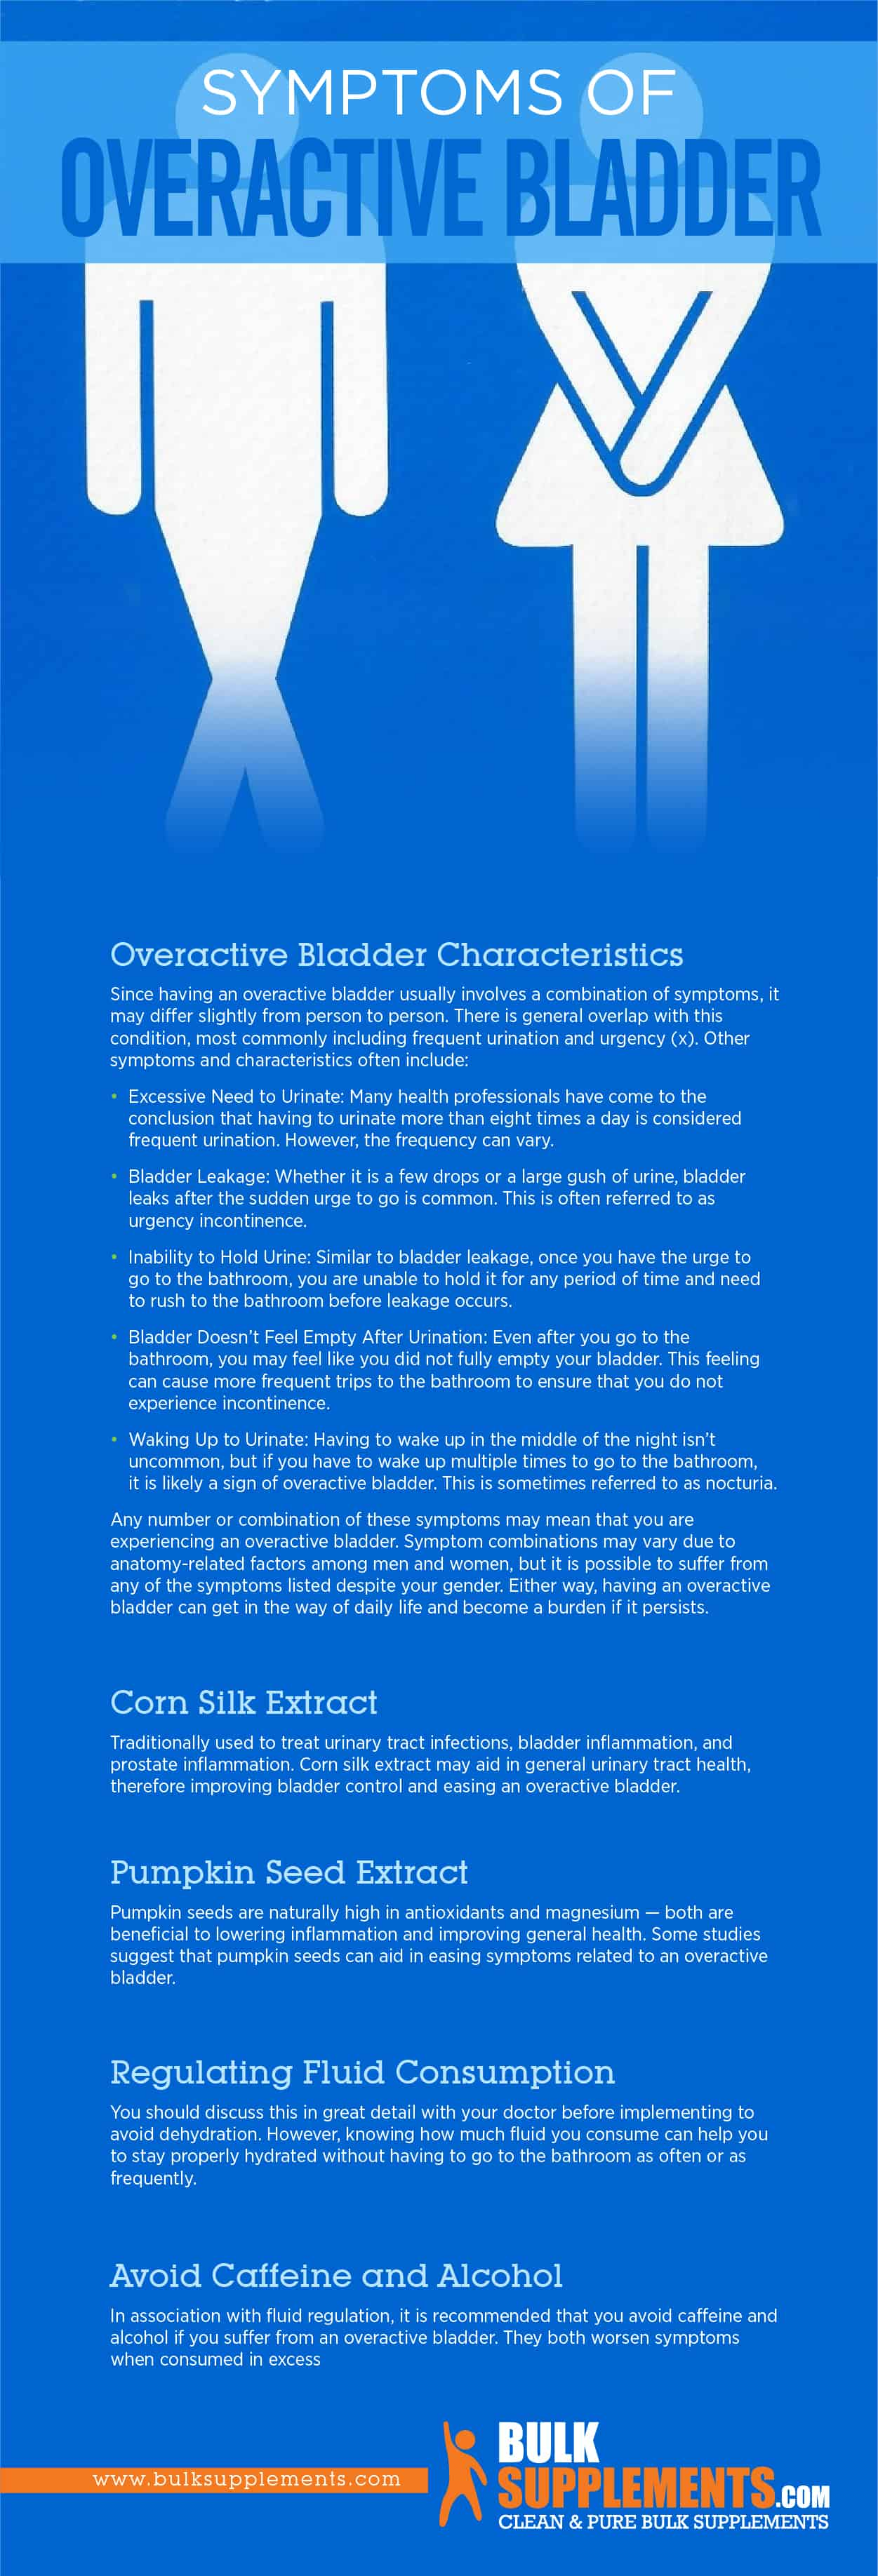 Overactive Bladder: Characteristics, Causes & Treatment